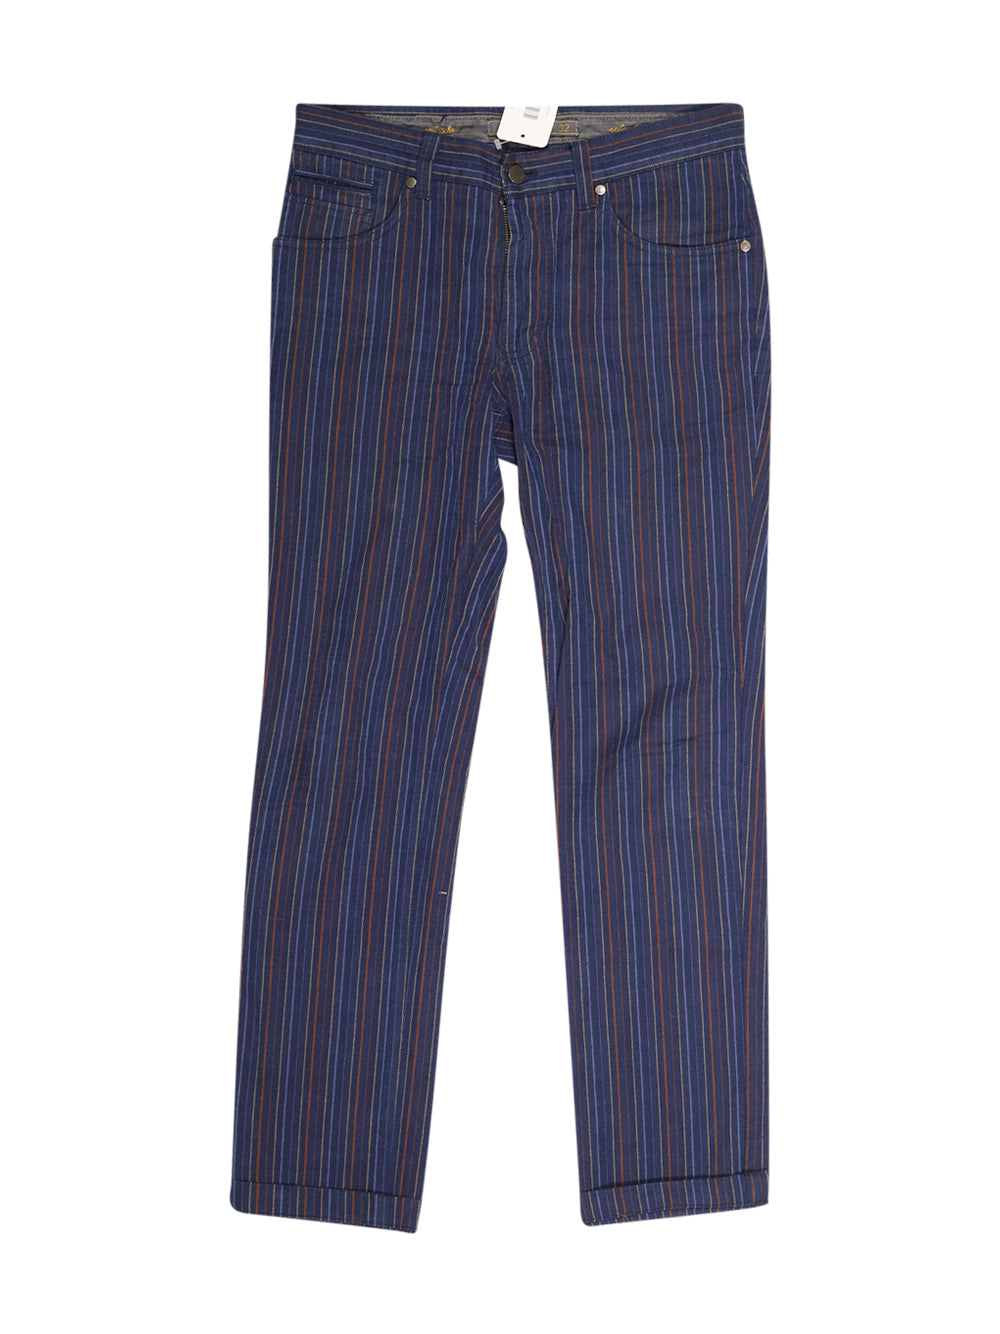 Front photo of Preloved seitasche Blue Man's trousers - size 36/S